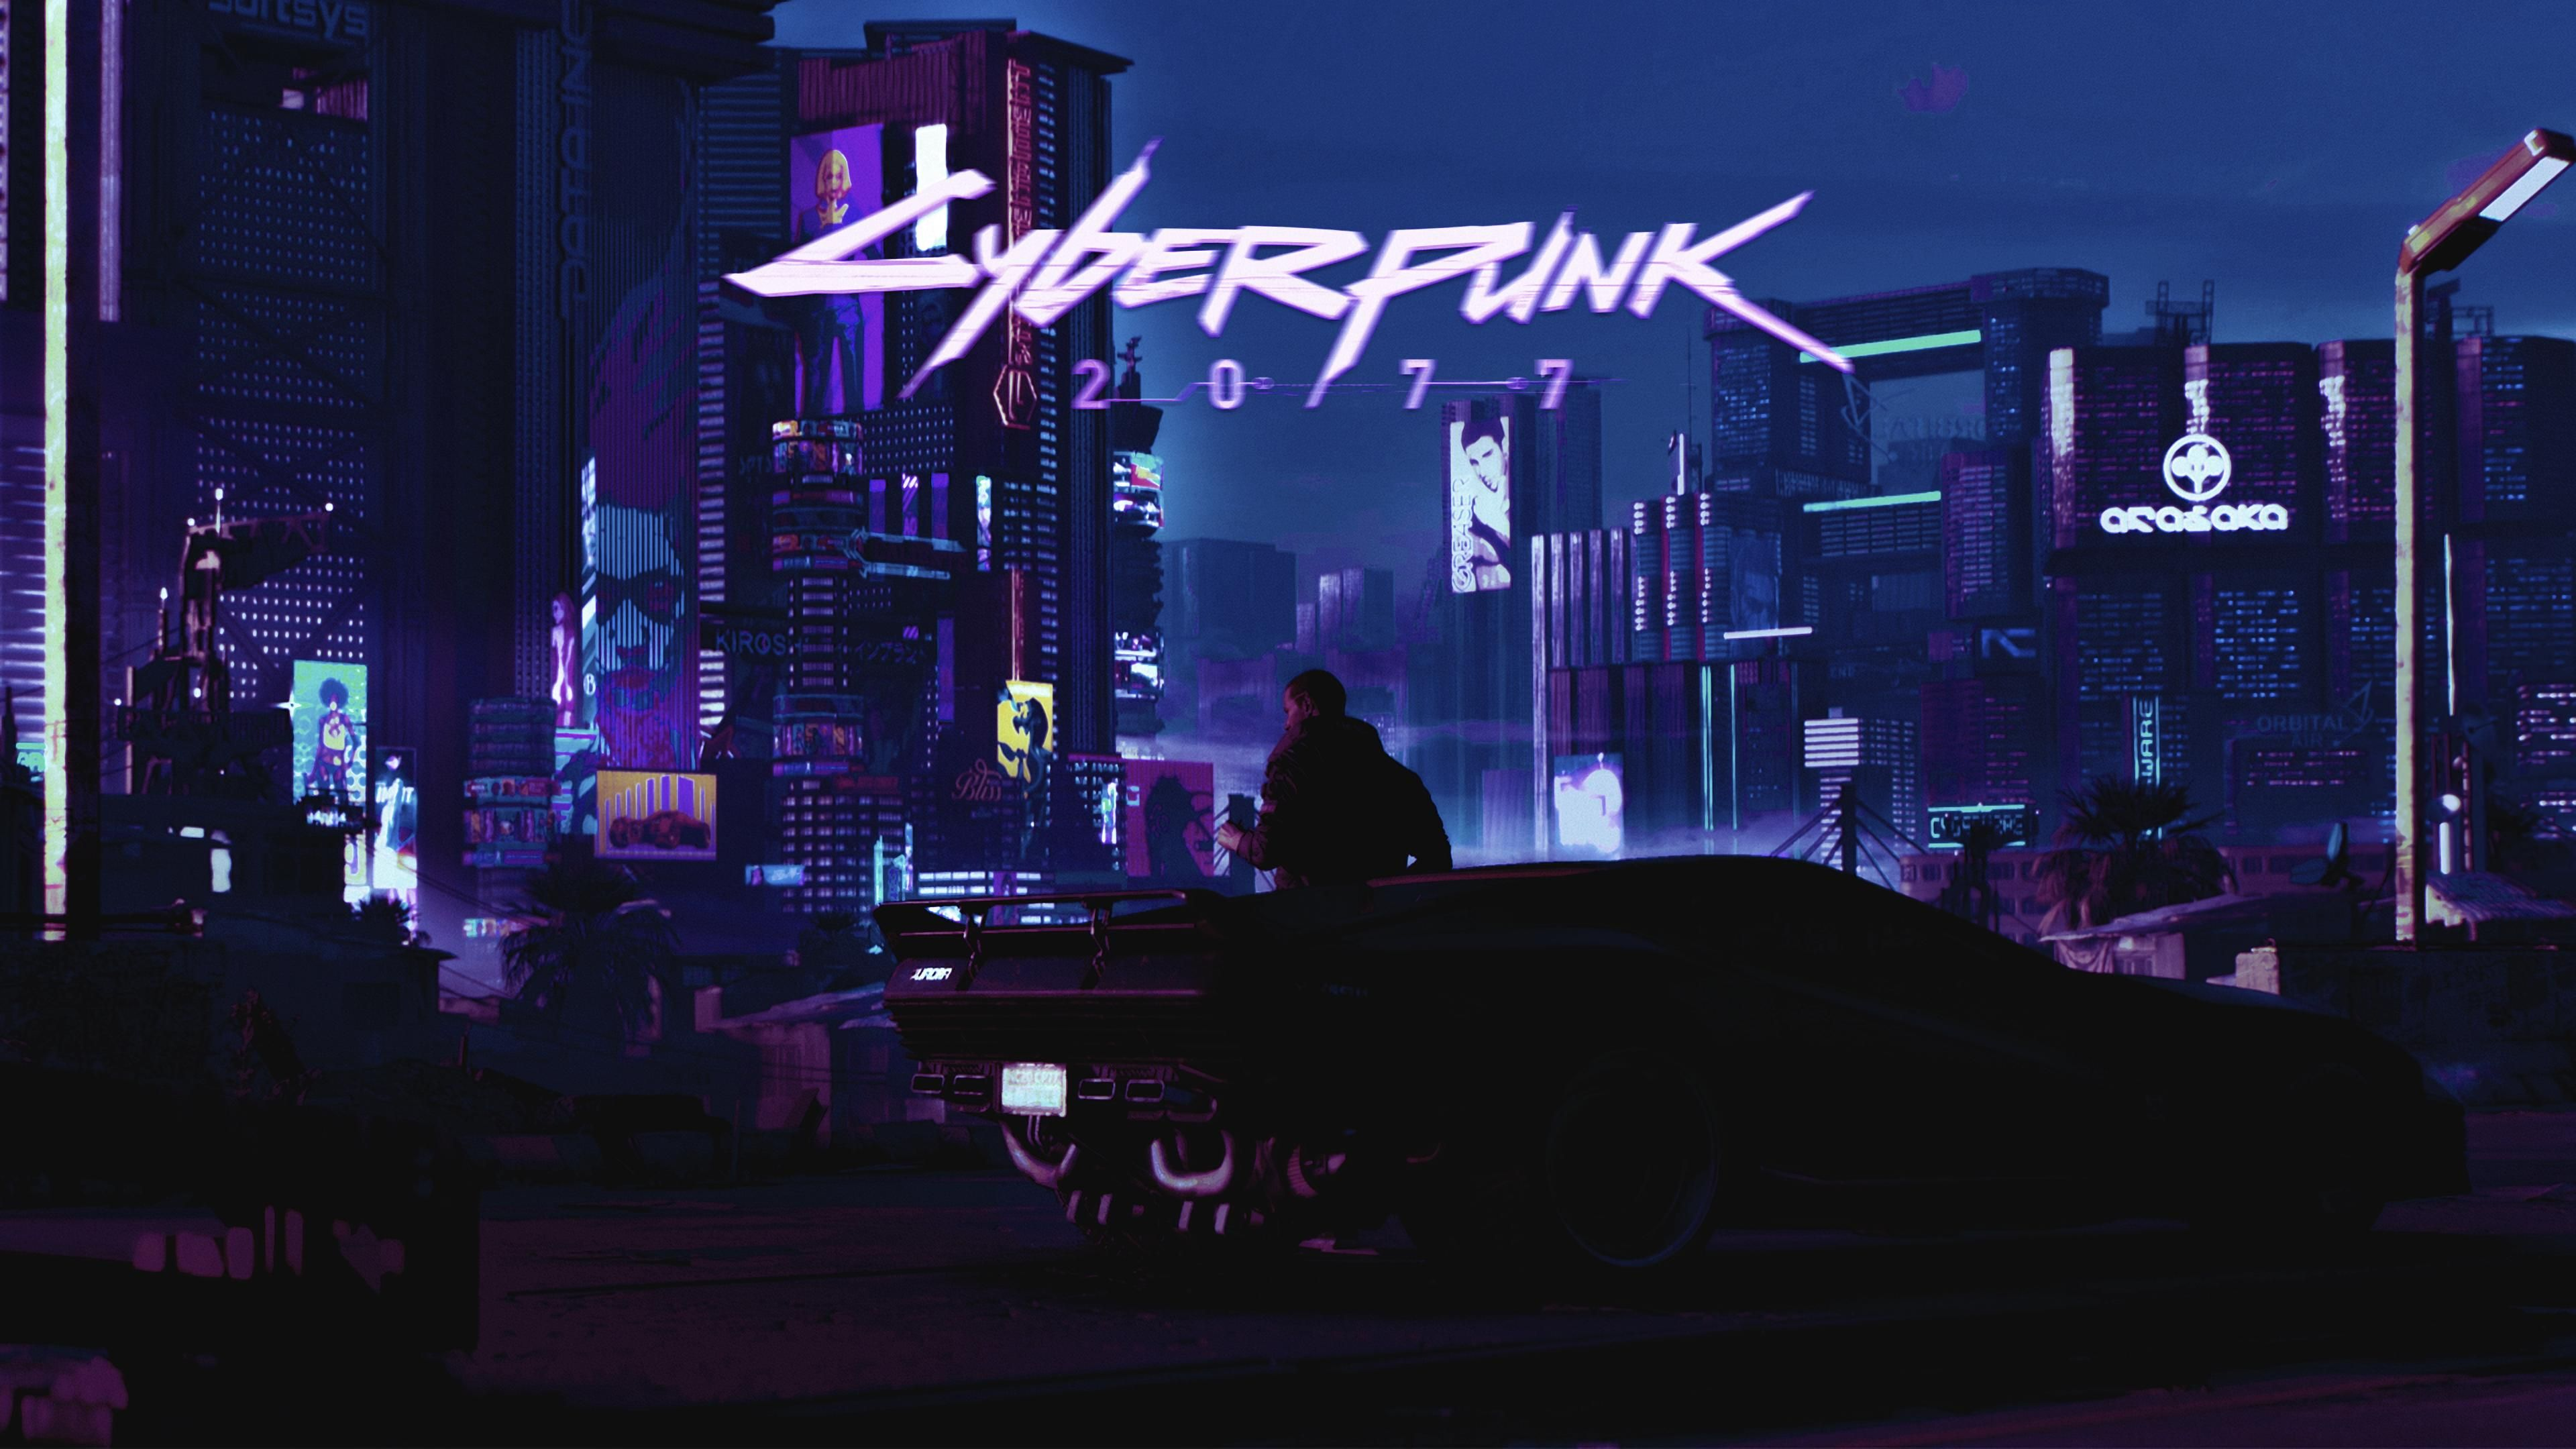 Cyberpunk 2077 4K Wallpaper - KoLPaPer - Awesome Free HD ...